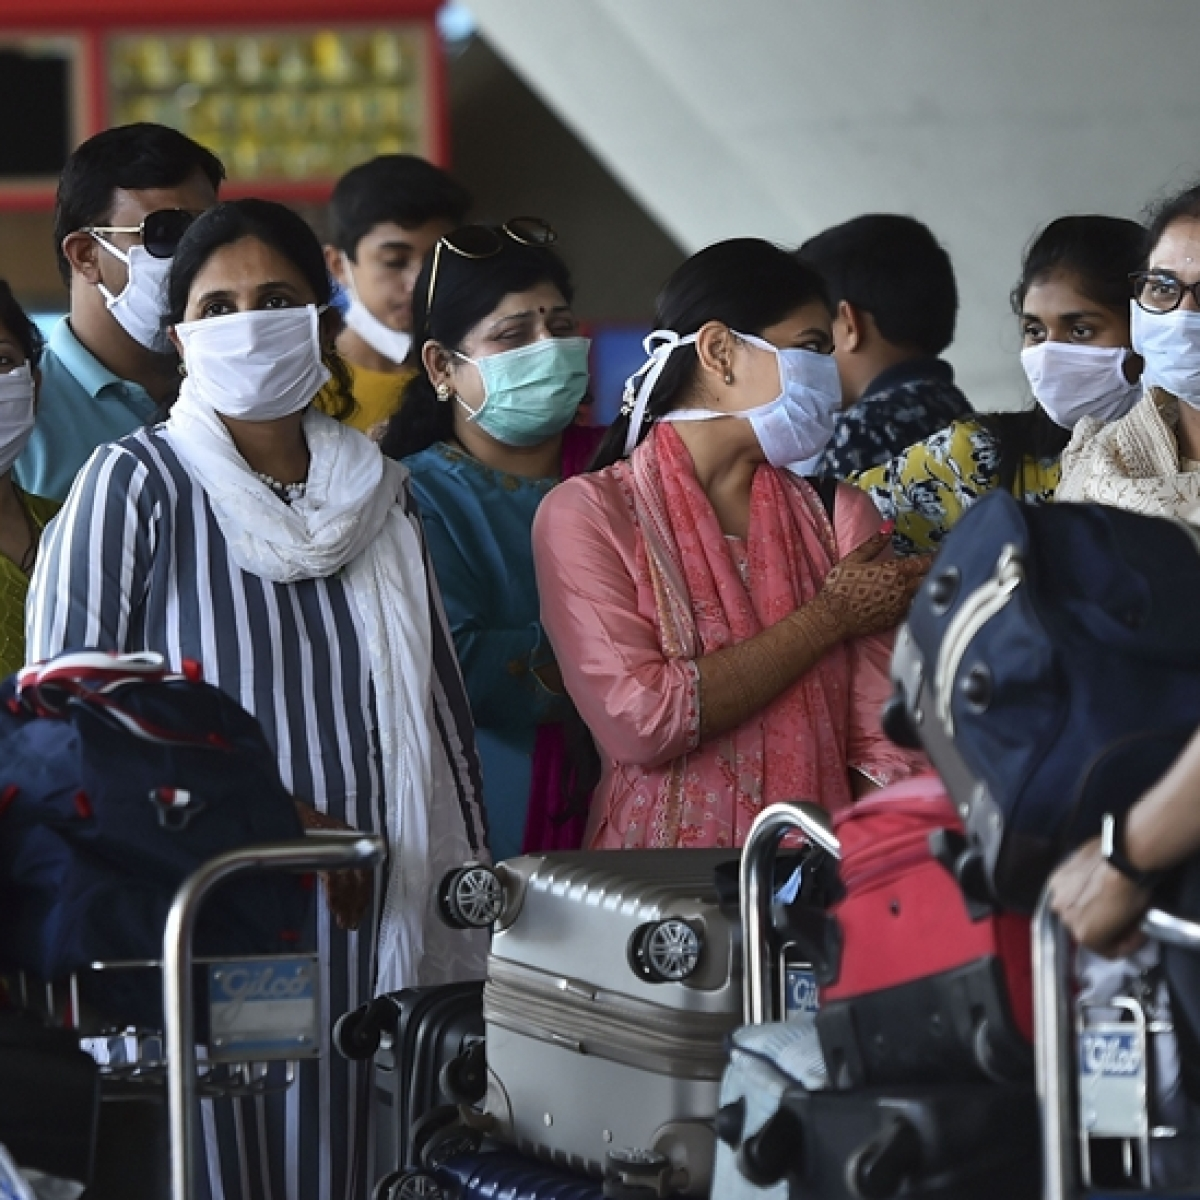 Coronavirus Update in India: 223 positive cases so far, 6700 contact traced people under surveillance: Health Ministry